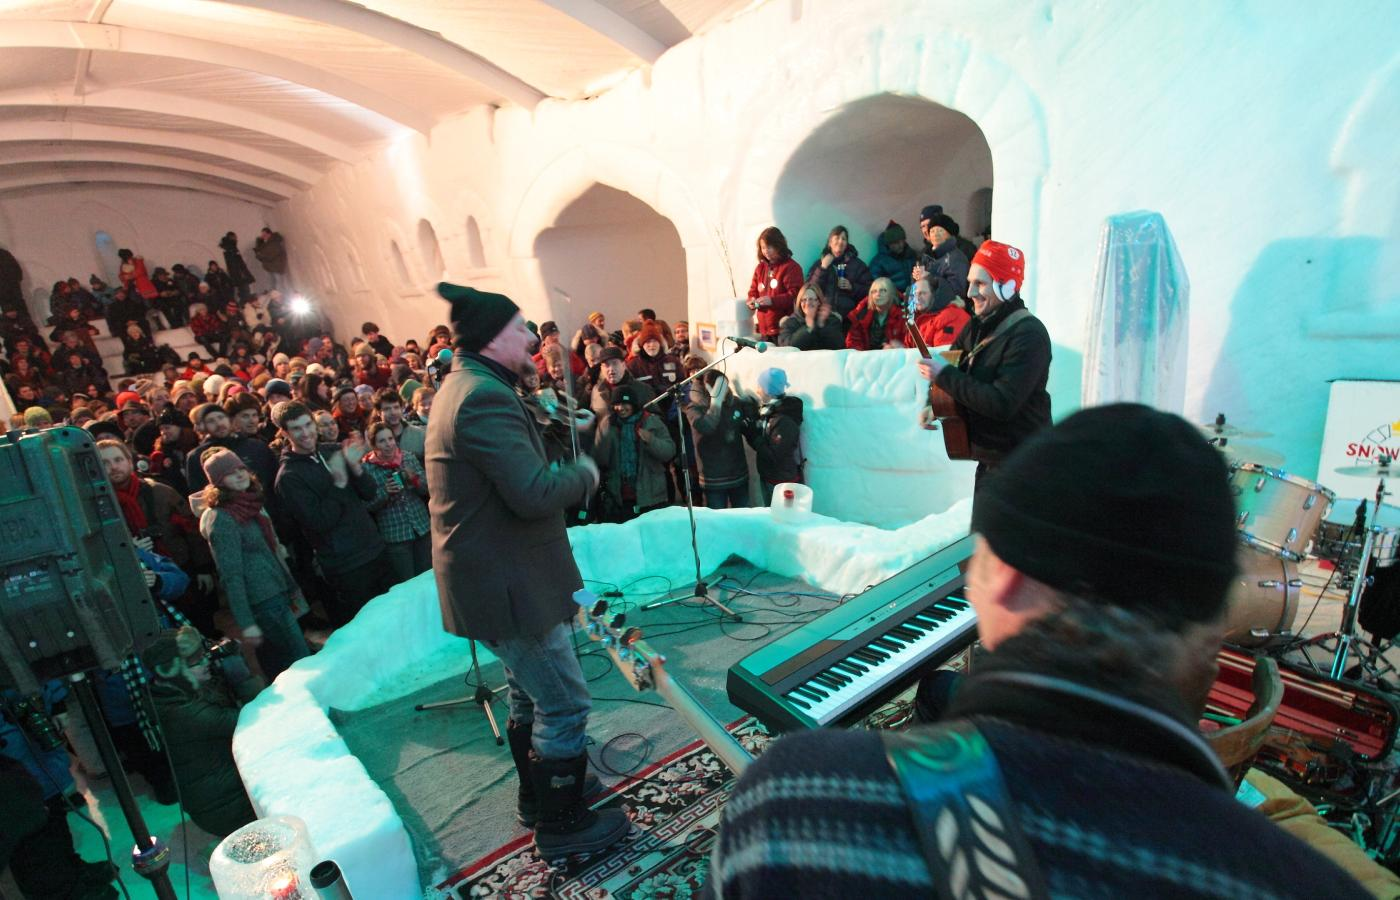 concert at the Snowking castle in Yellowknife in March